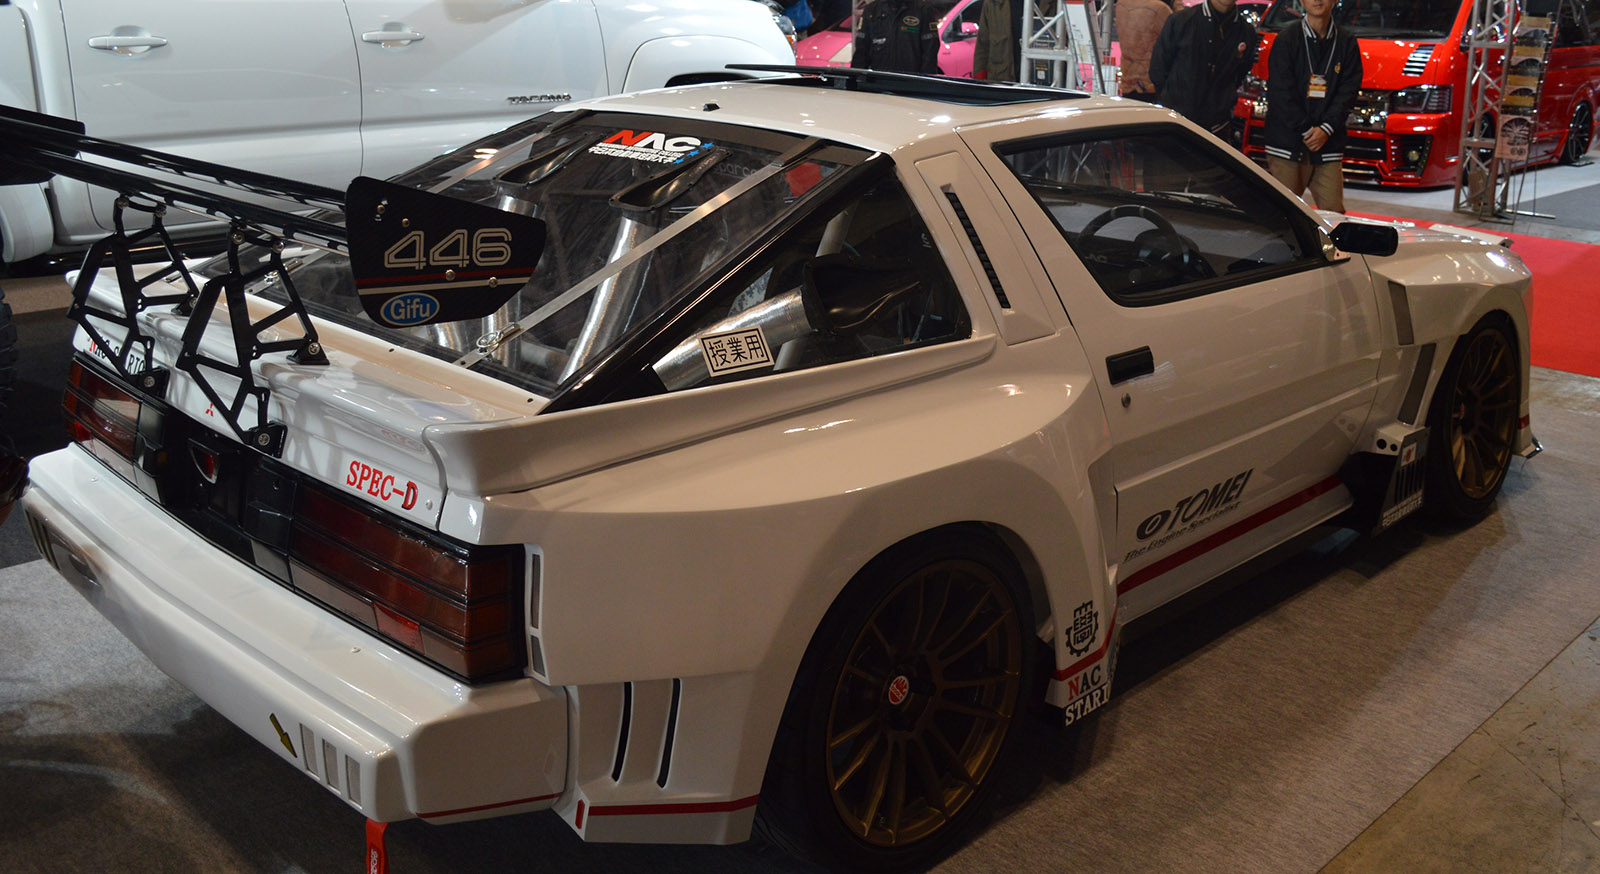 Nac Spec D Mitsubishi Starion With A Rb Dett